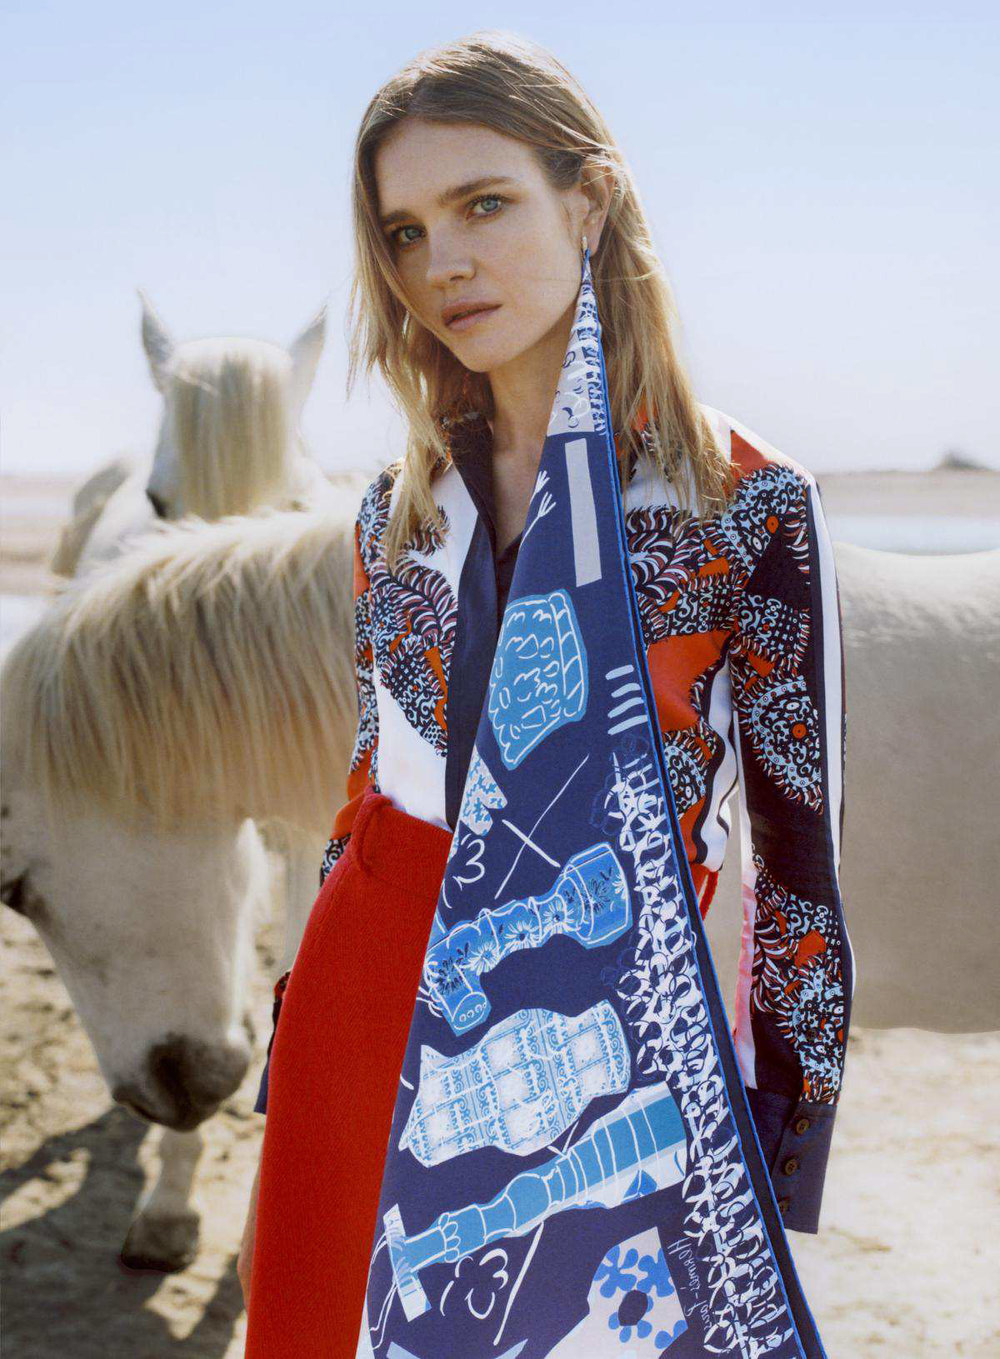 Natalia Vodianova by Zoe Ghertner for Vogue US July 2018 (3).jpg